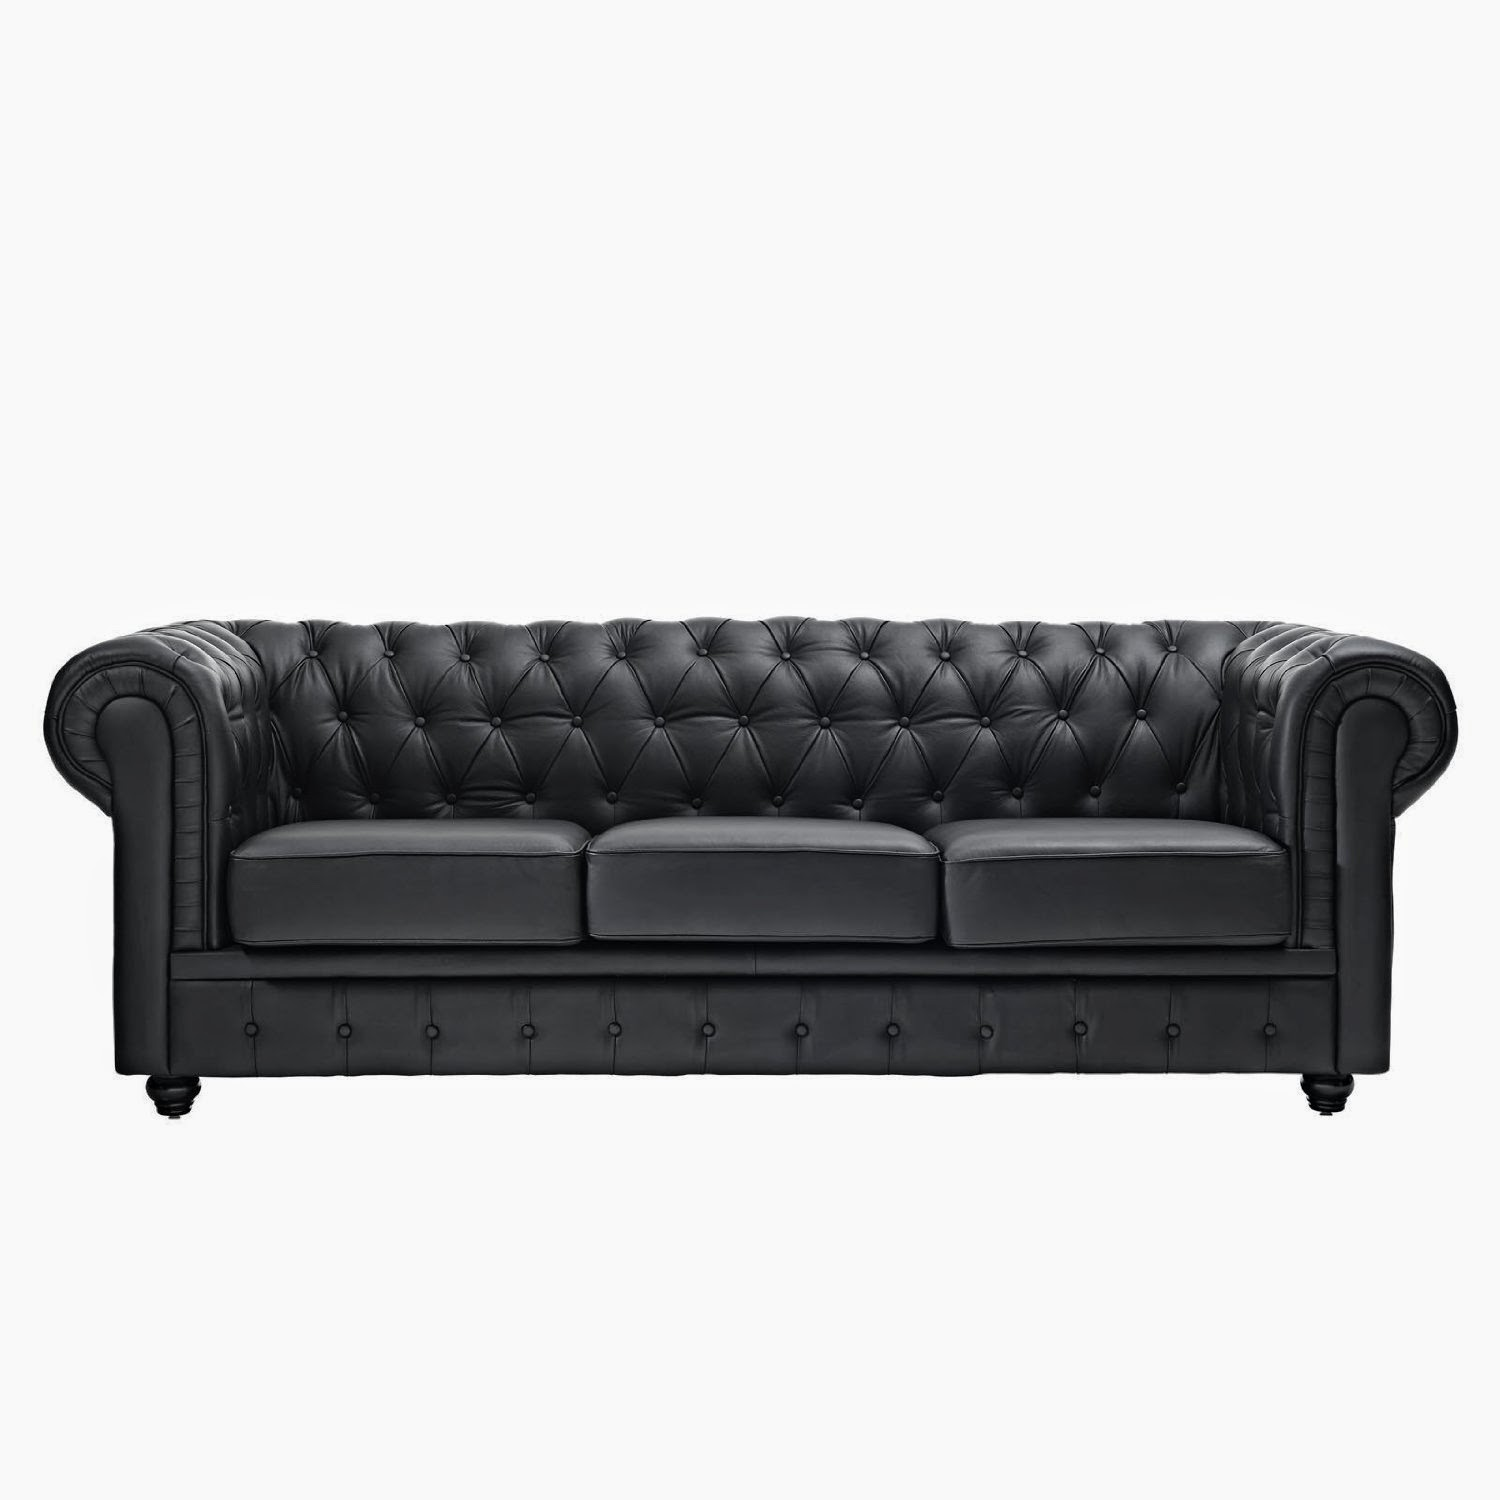 Sofa Saver Boards Images Simple Hearth Saver Wayfair UK  : modern victorian leather sofa from favefaves.com size 1500 x 1500 jpeg 91kB